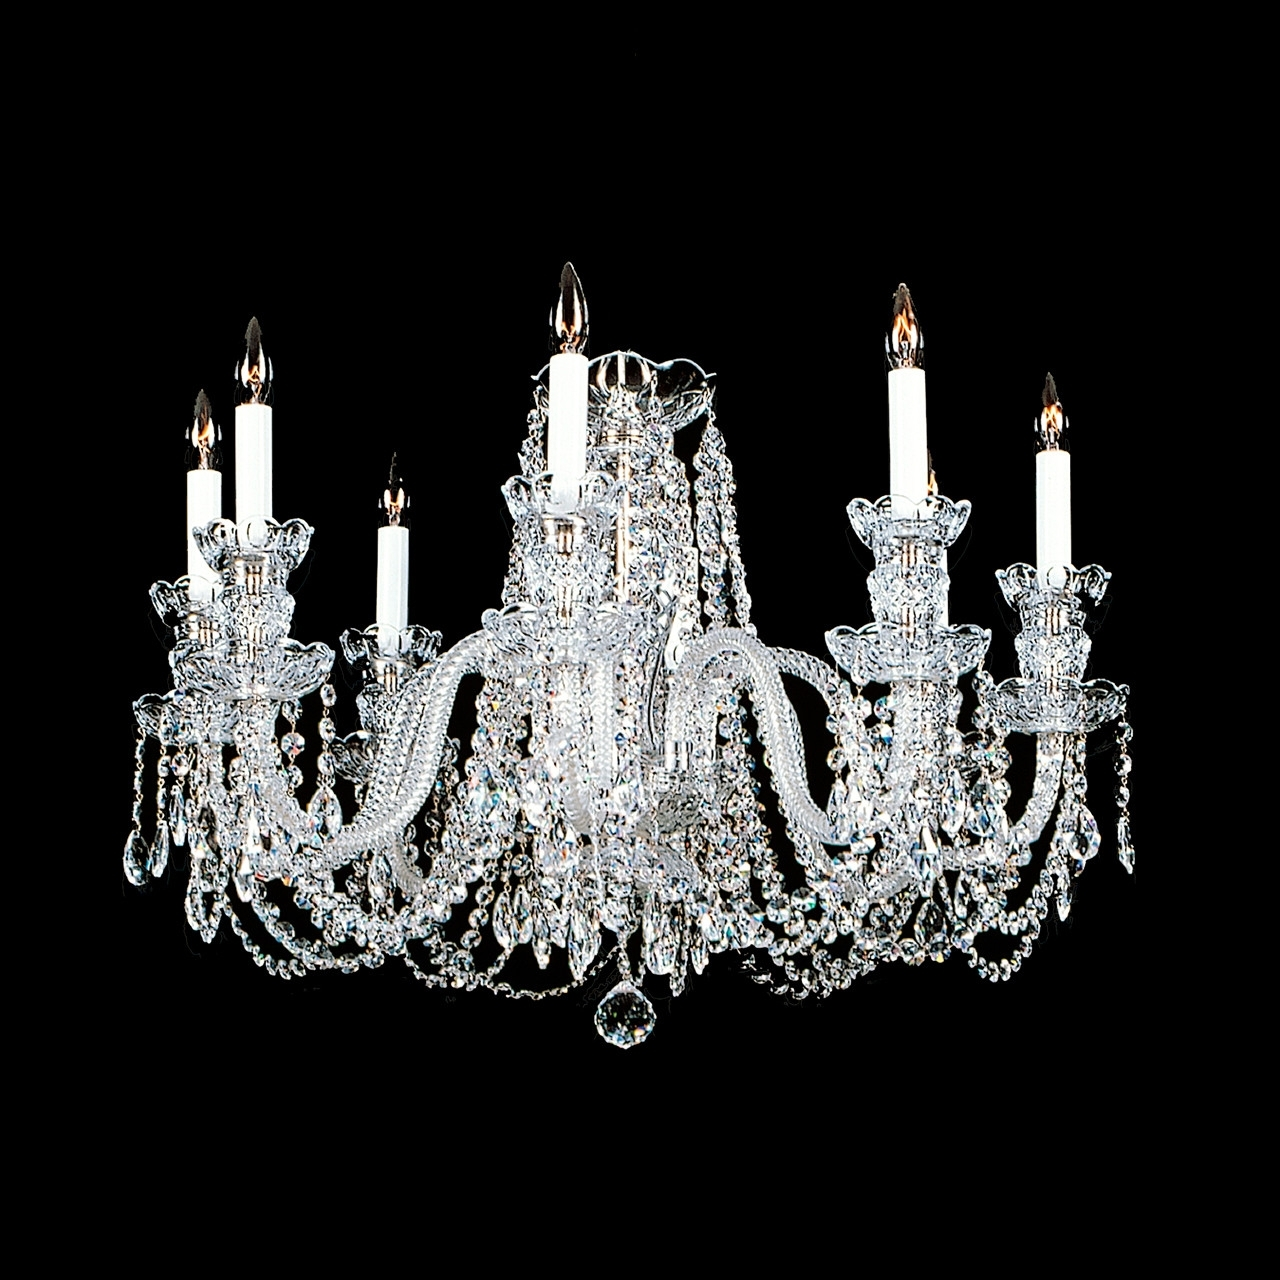 Short Chandeliers Within Most Recently Released Crystal Chandelier Category : Swarovski Crystal Chandelier Mini (View 13 of 15)